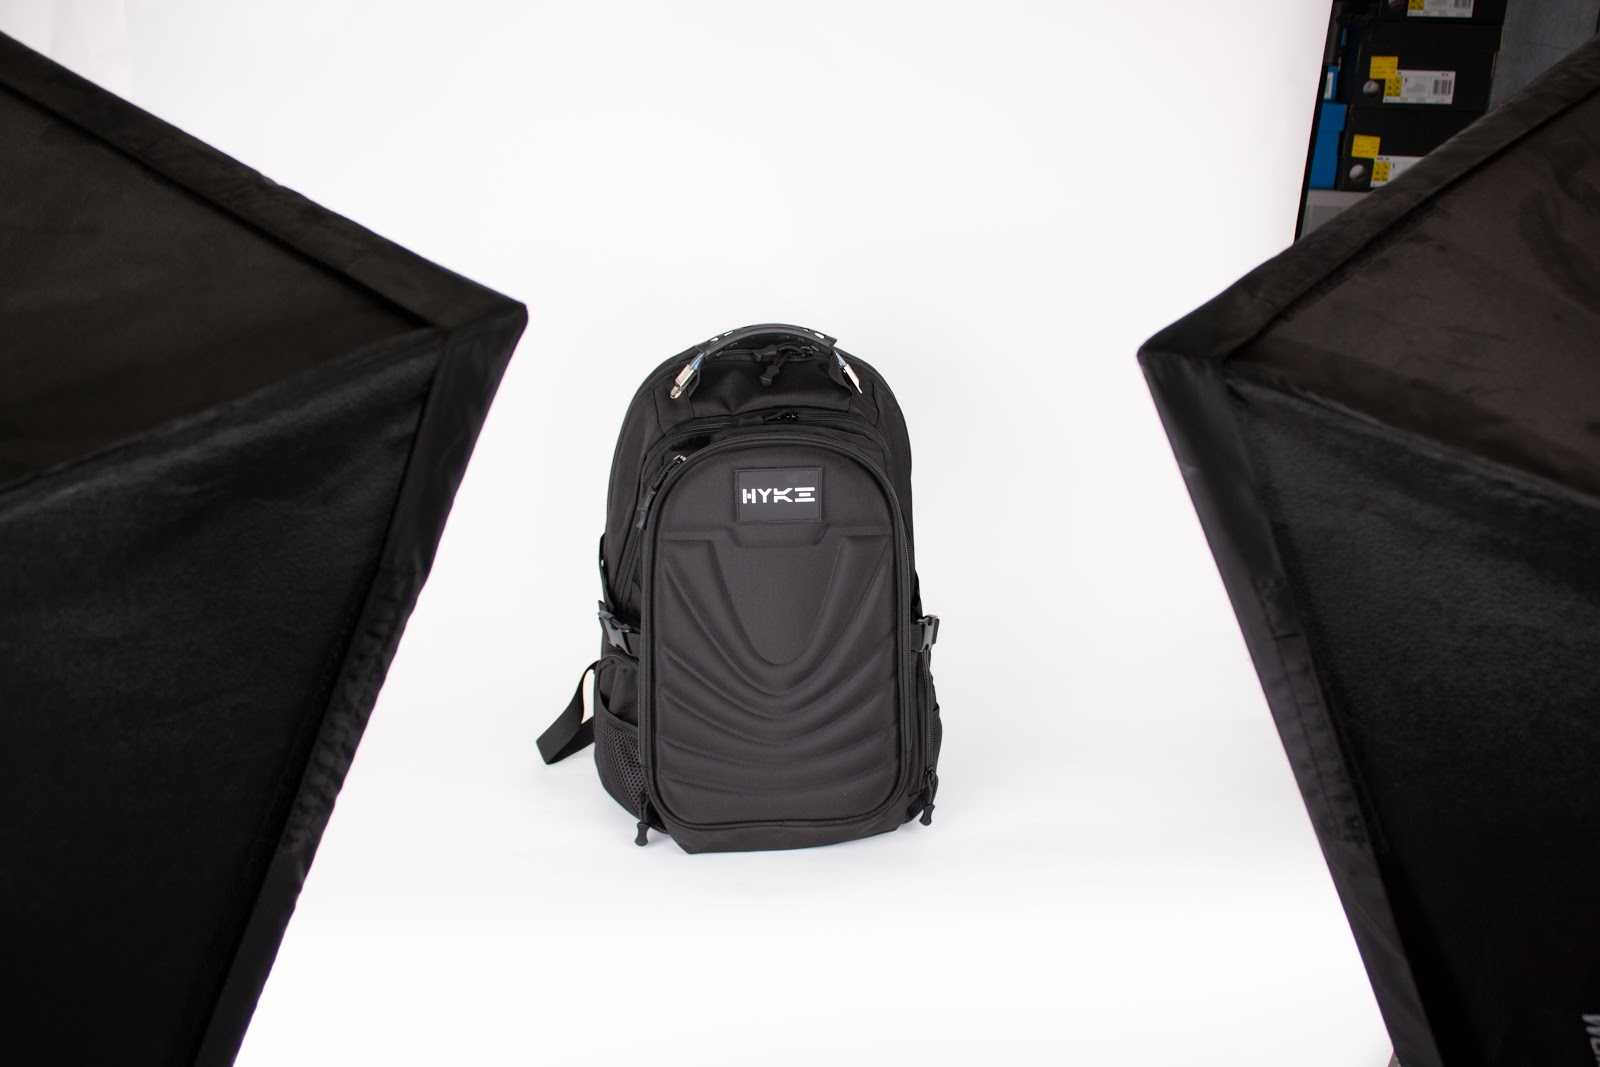 Picture showing a backpack posing for the cameras